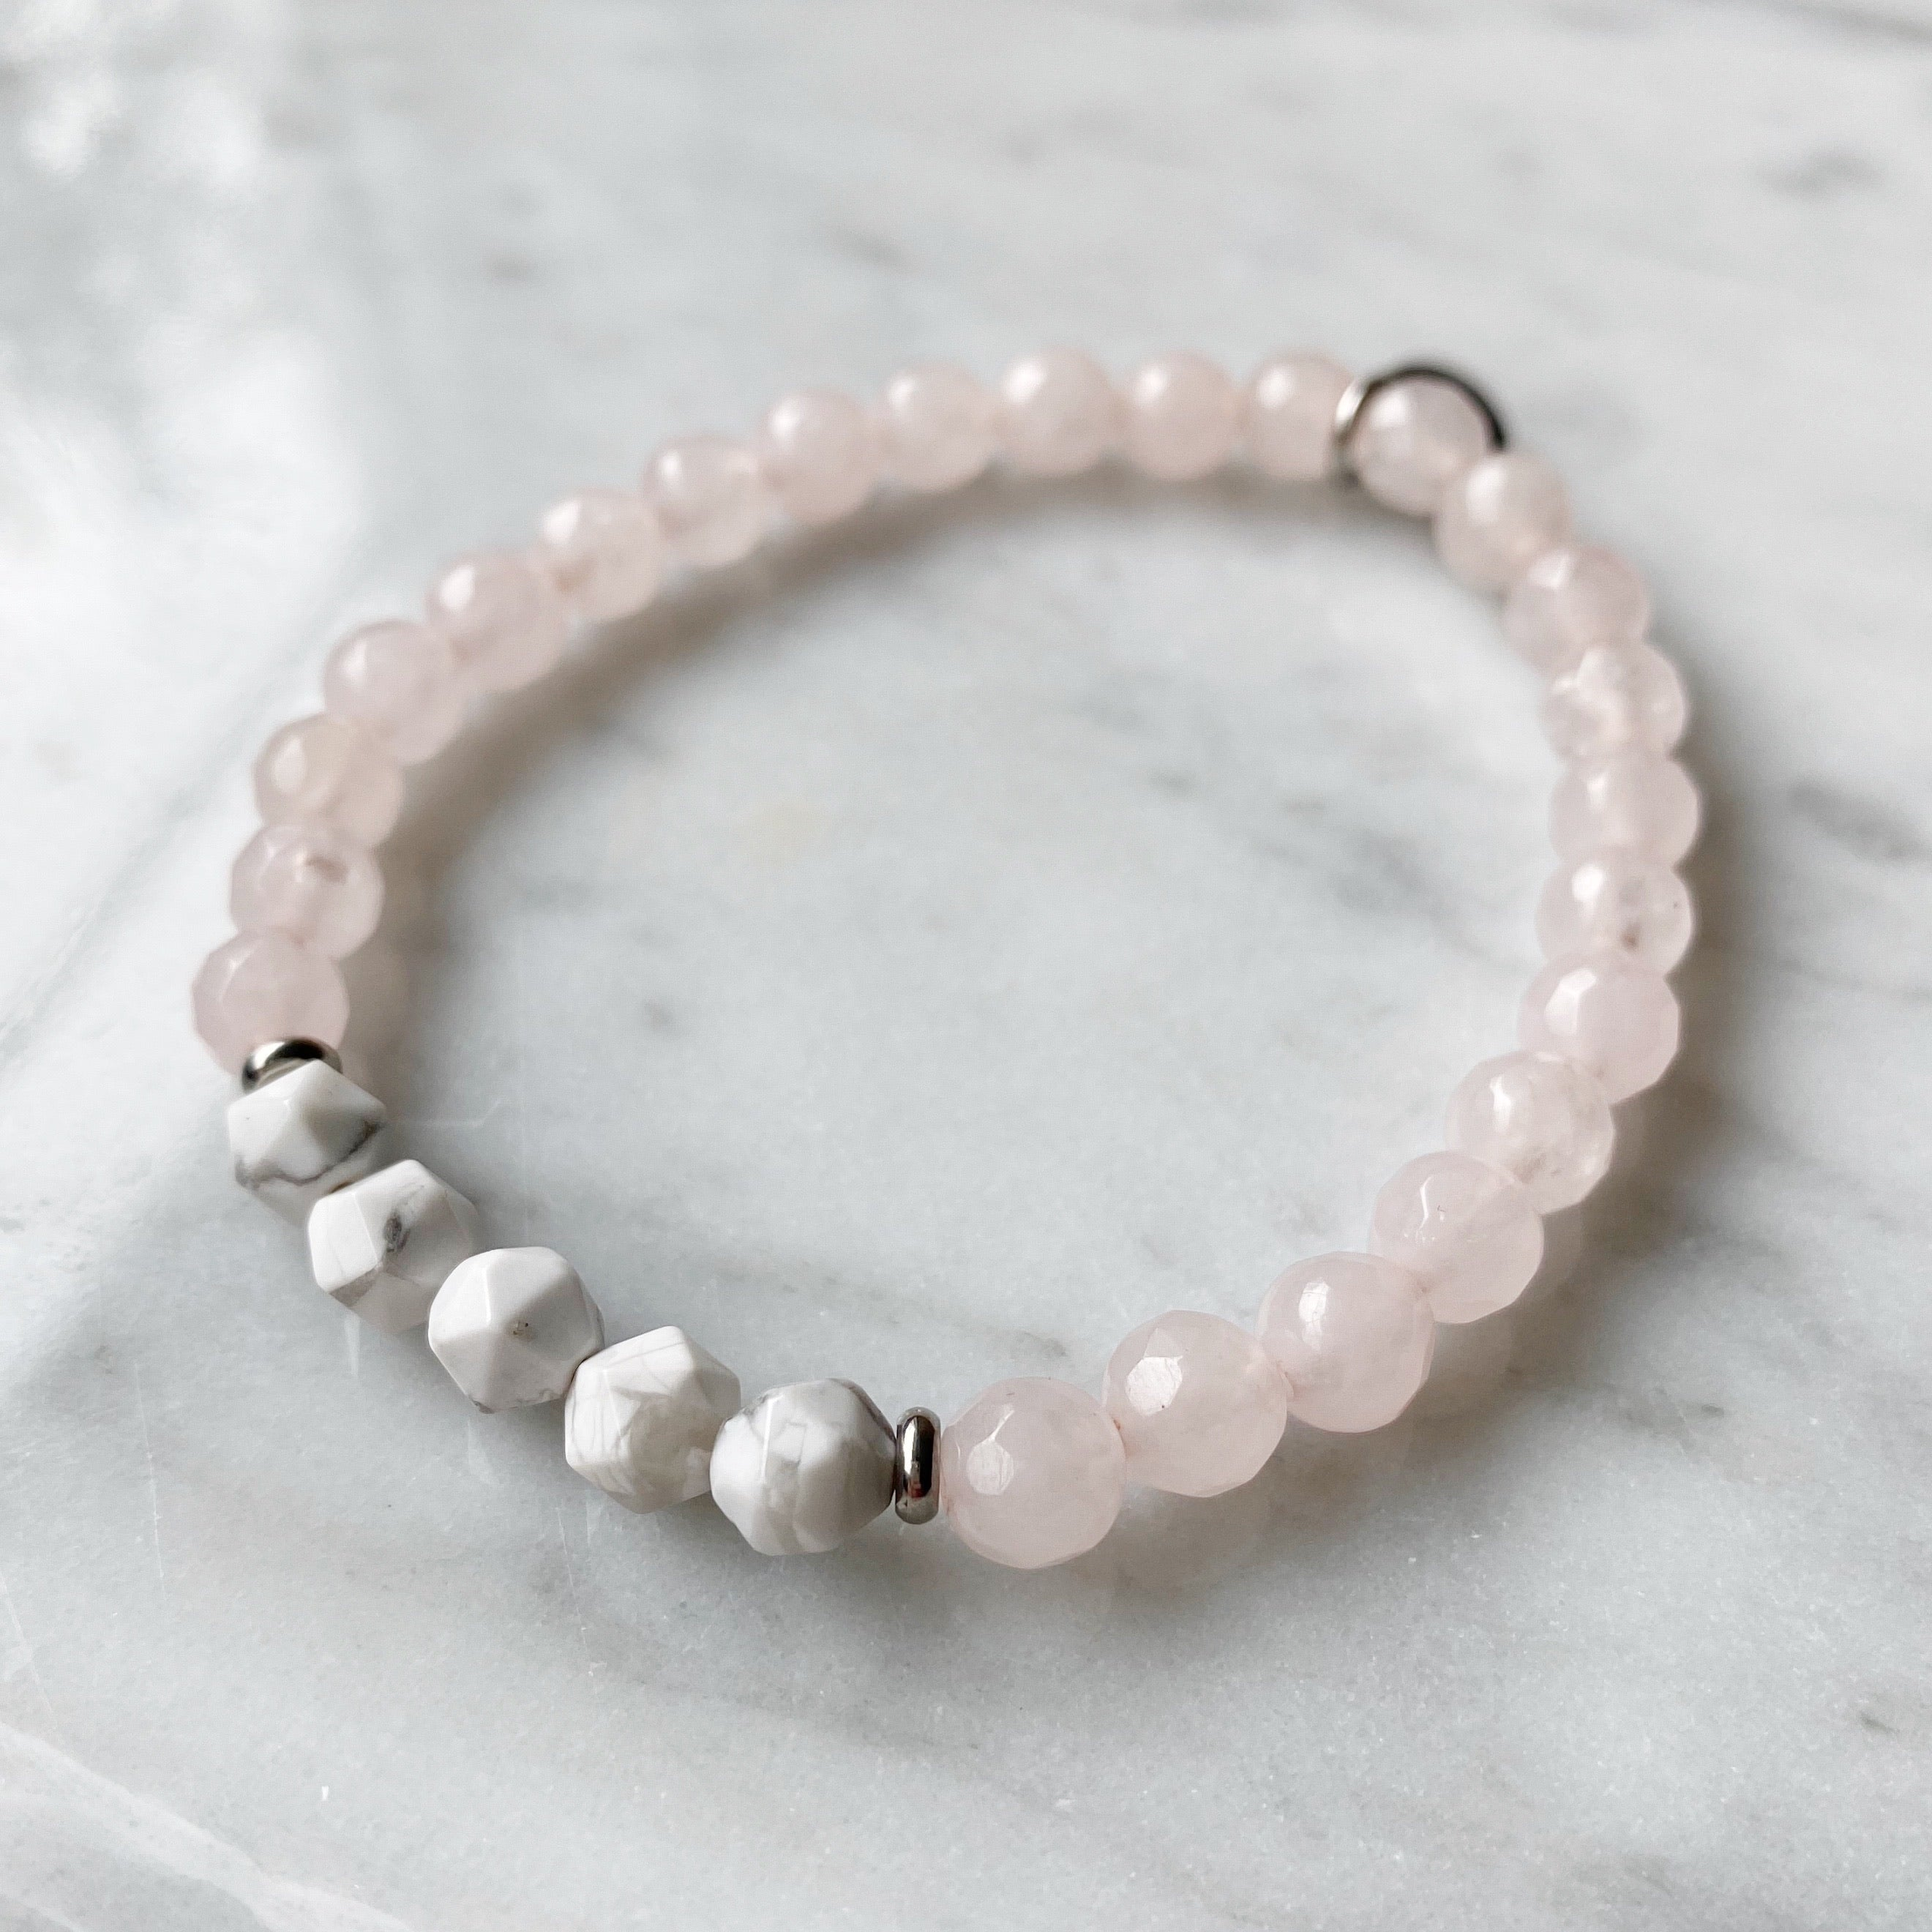 Amazonite and Rose Quartz Bracelet Set - 4 Piece